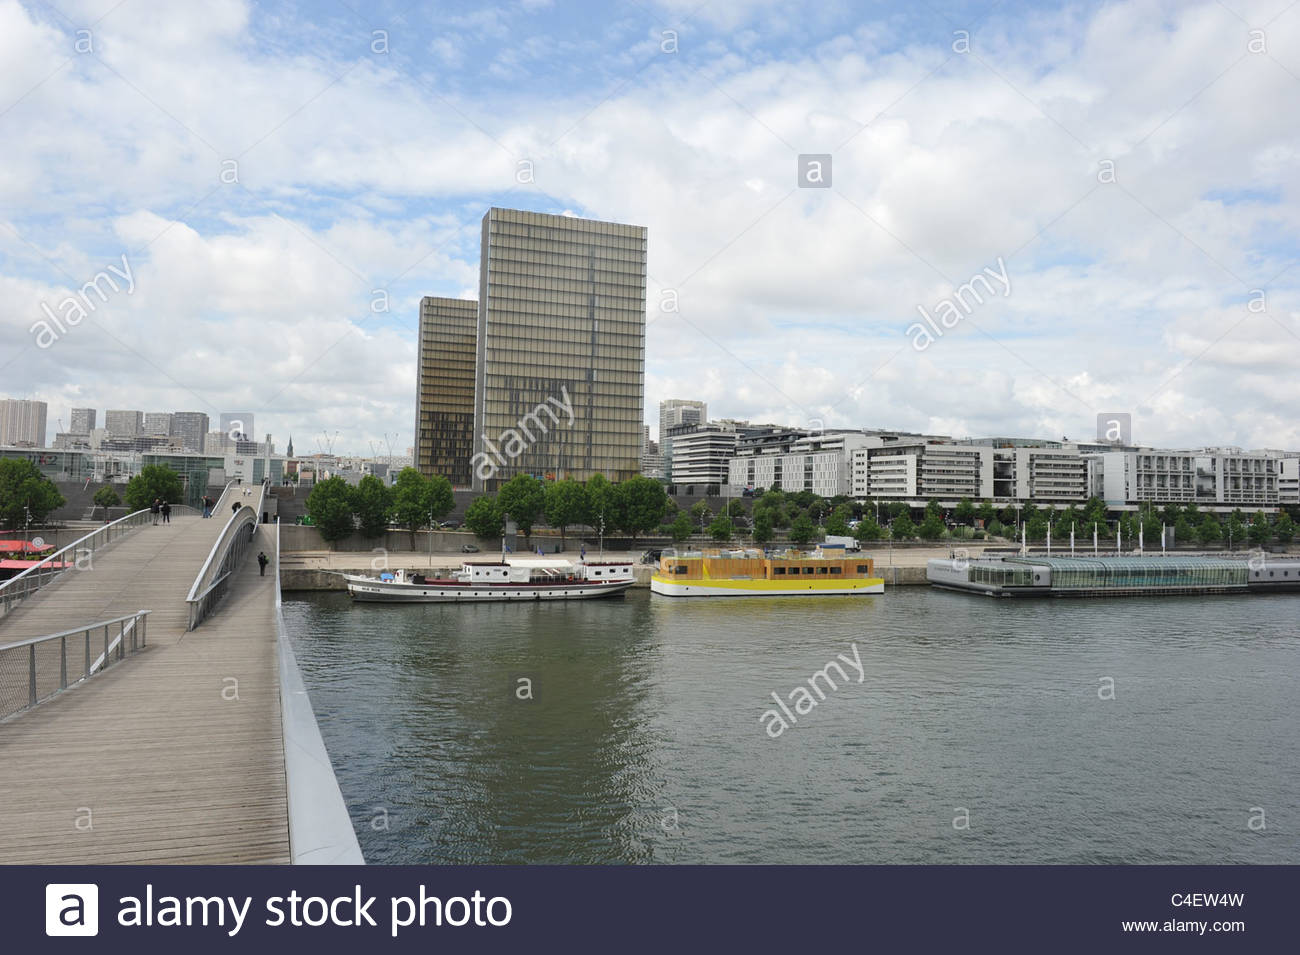 The new Paris East with Passerelle Simone de Beauvoir and the towers of the national library François Mitterand - Stock Image